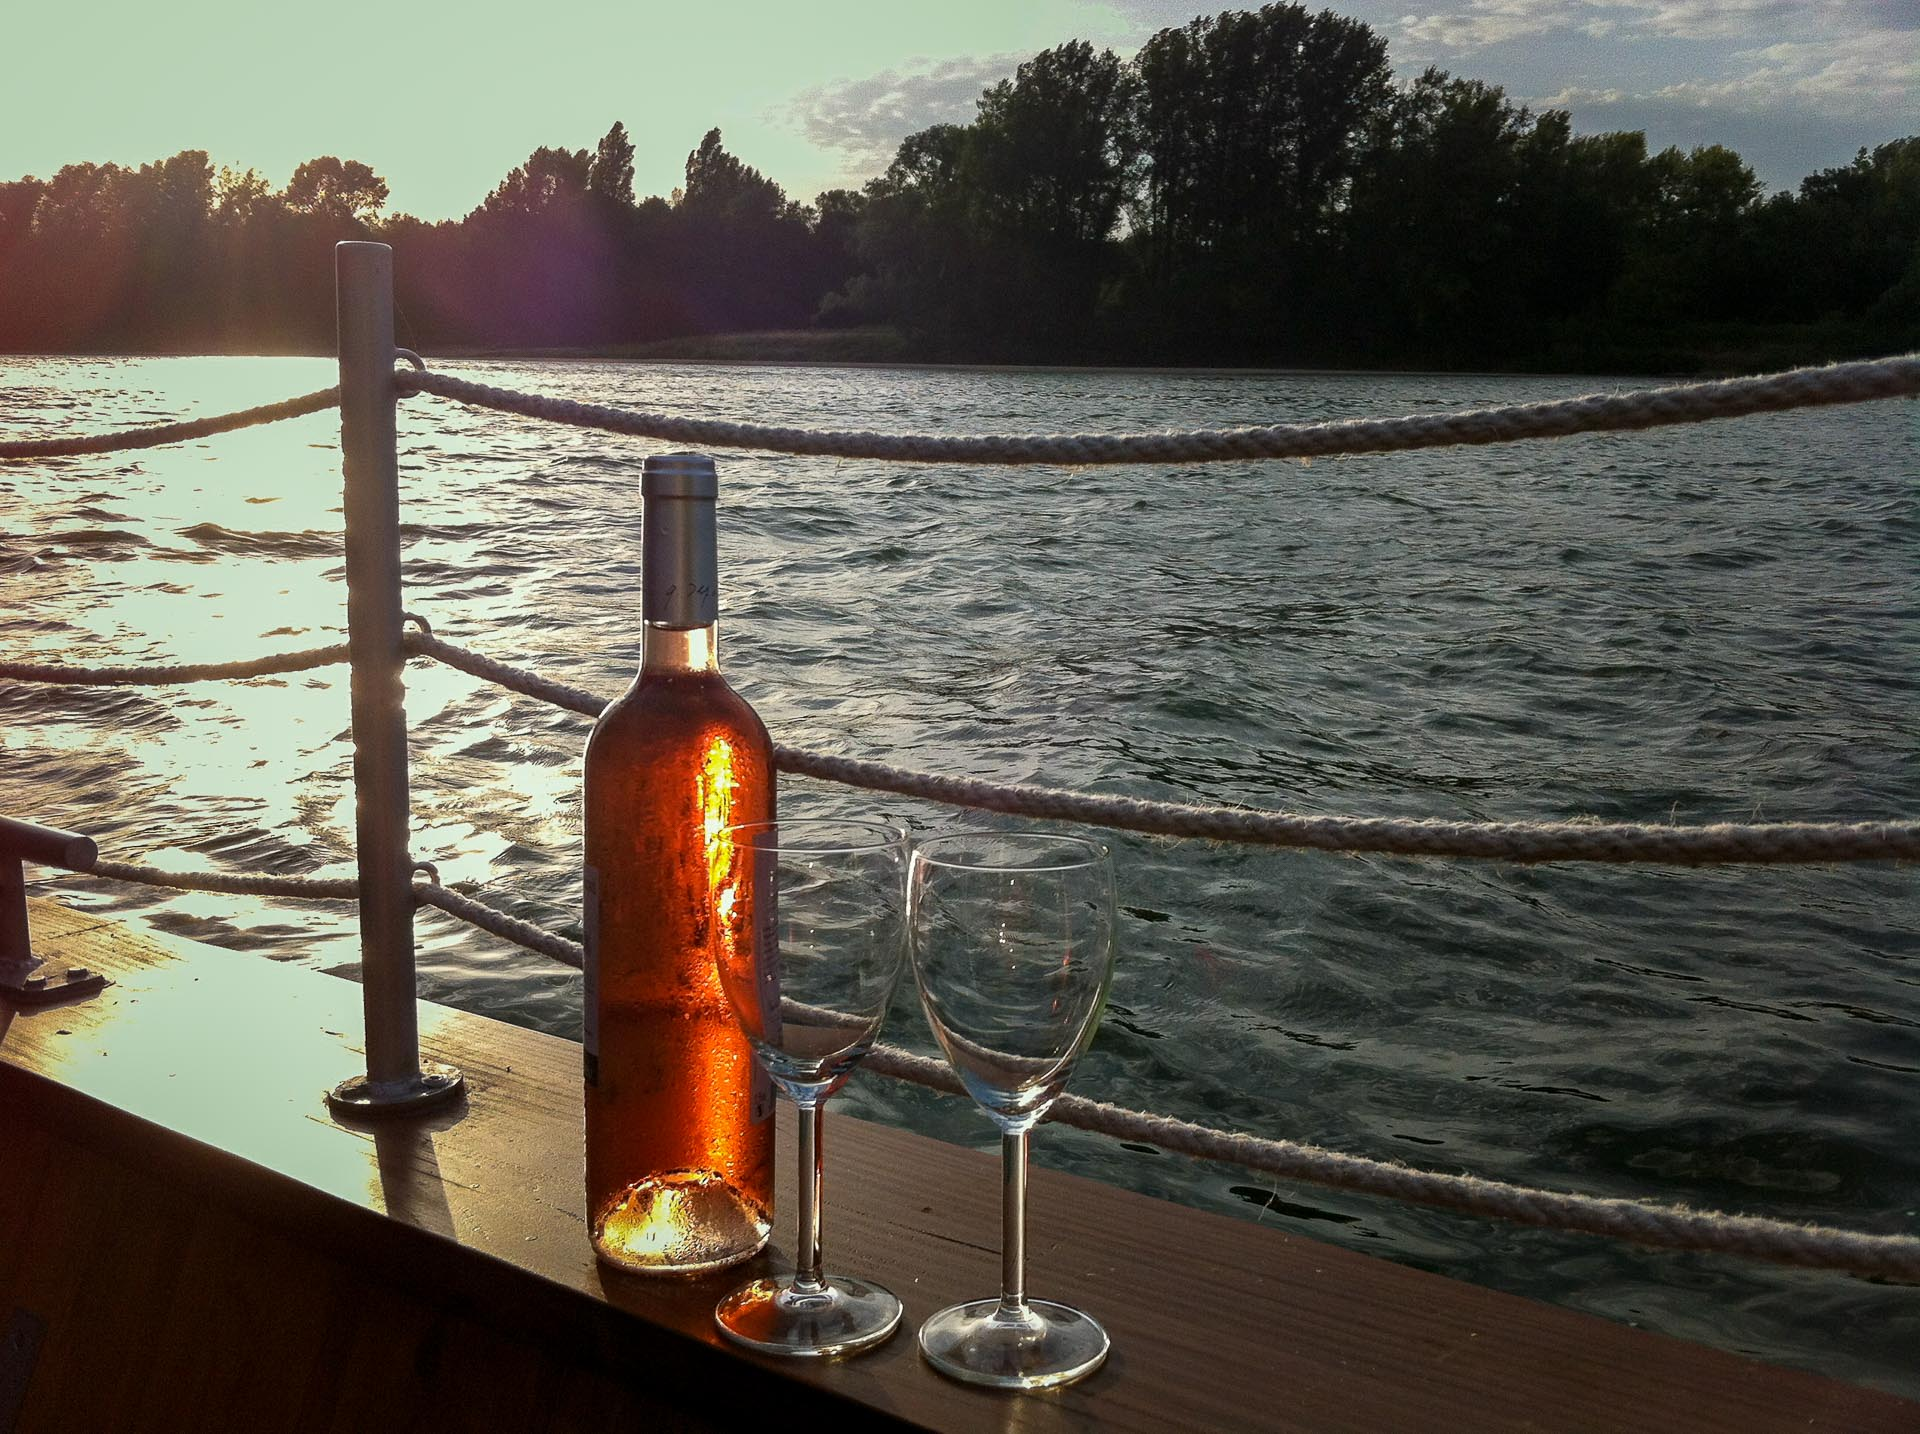 No cruise nor travel on rivers, but wine tasting on the Loire River, near the french city of Tours and the chateau of Langeais. Hotel La Toue Reine (la Batelière), Loire Valley, France.